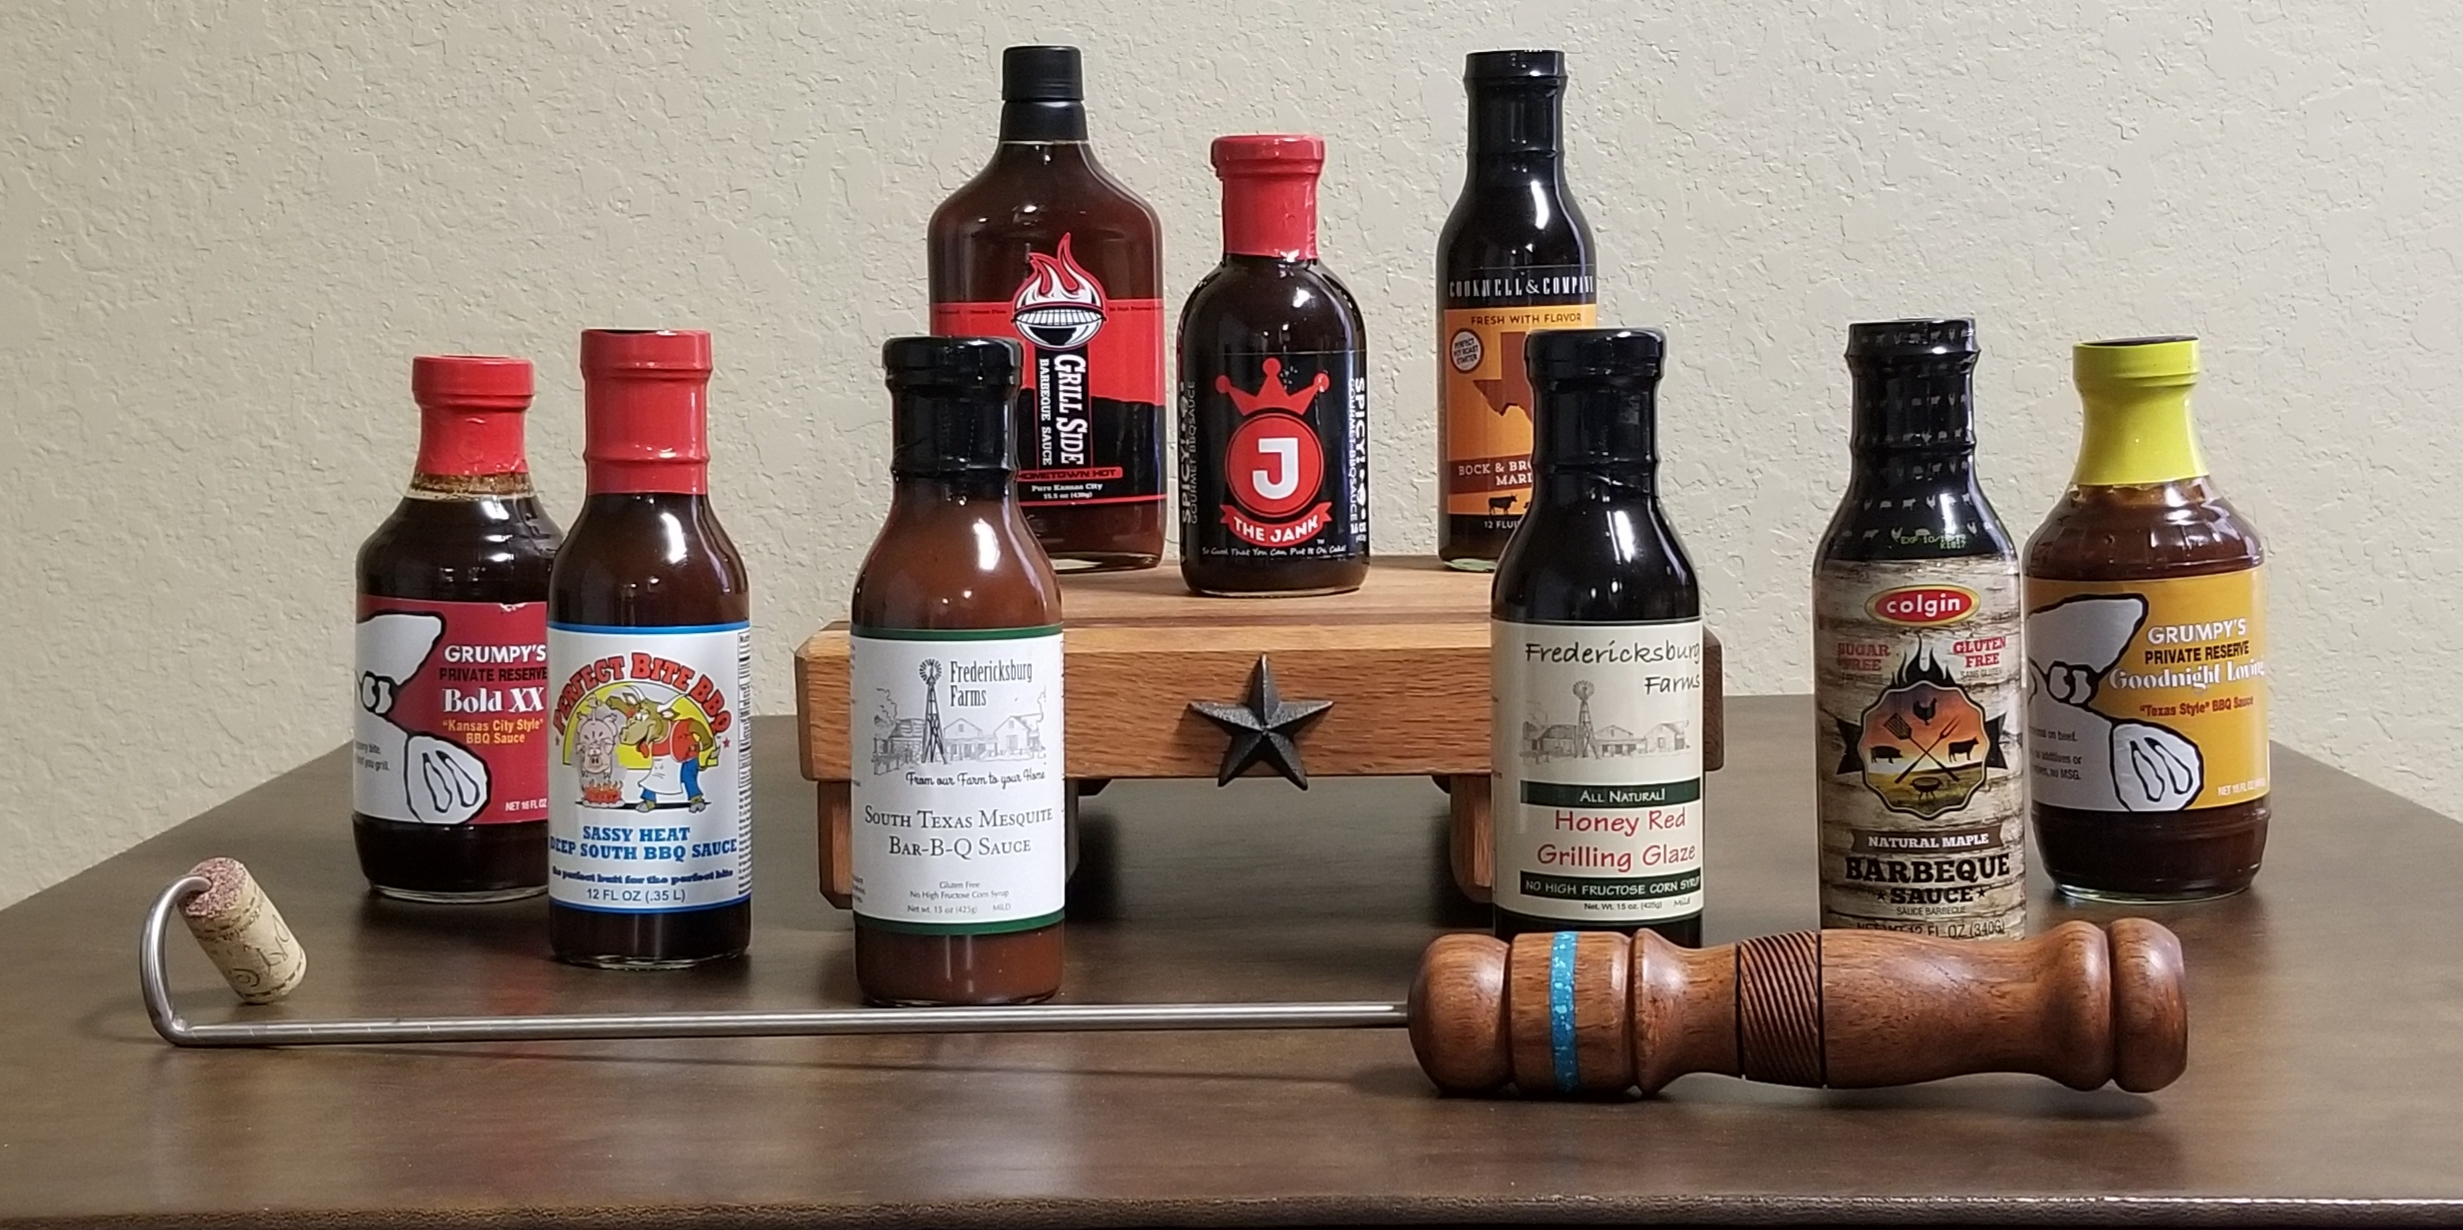 Online Secret Bid Auction Item: Homestyle Bar-B-Que: Artisan handmade pigtail meat flipper w/mesquite wood handle, wood cutting board, sauces & marinades